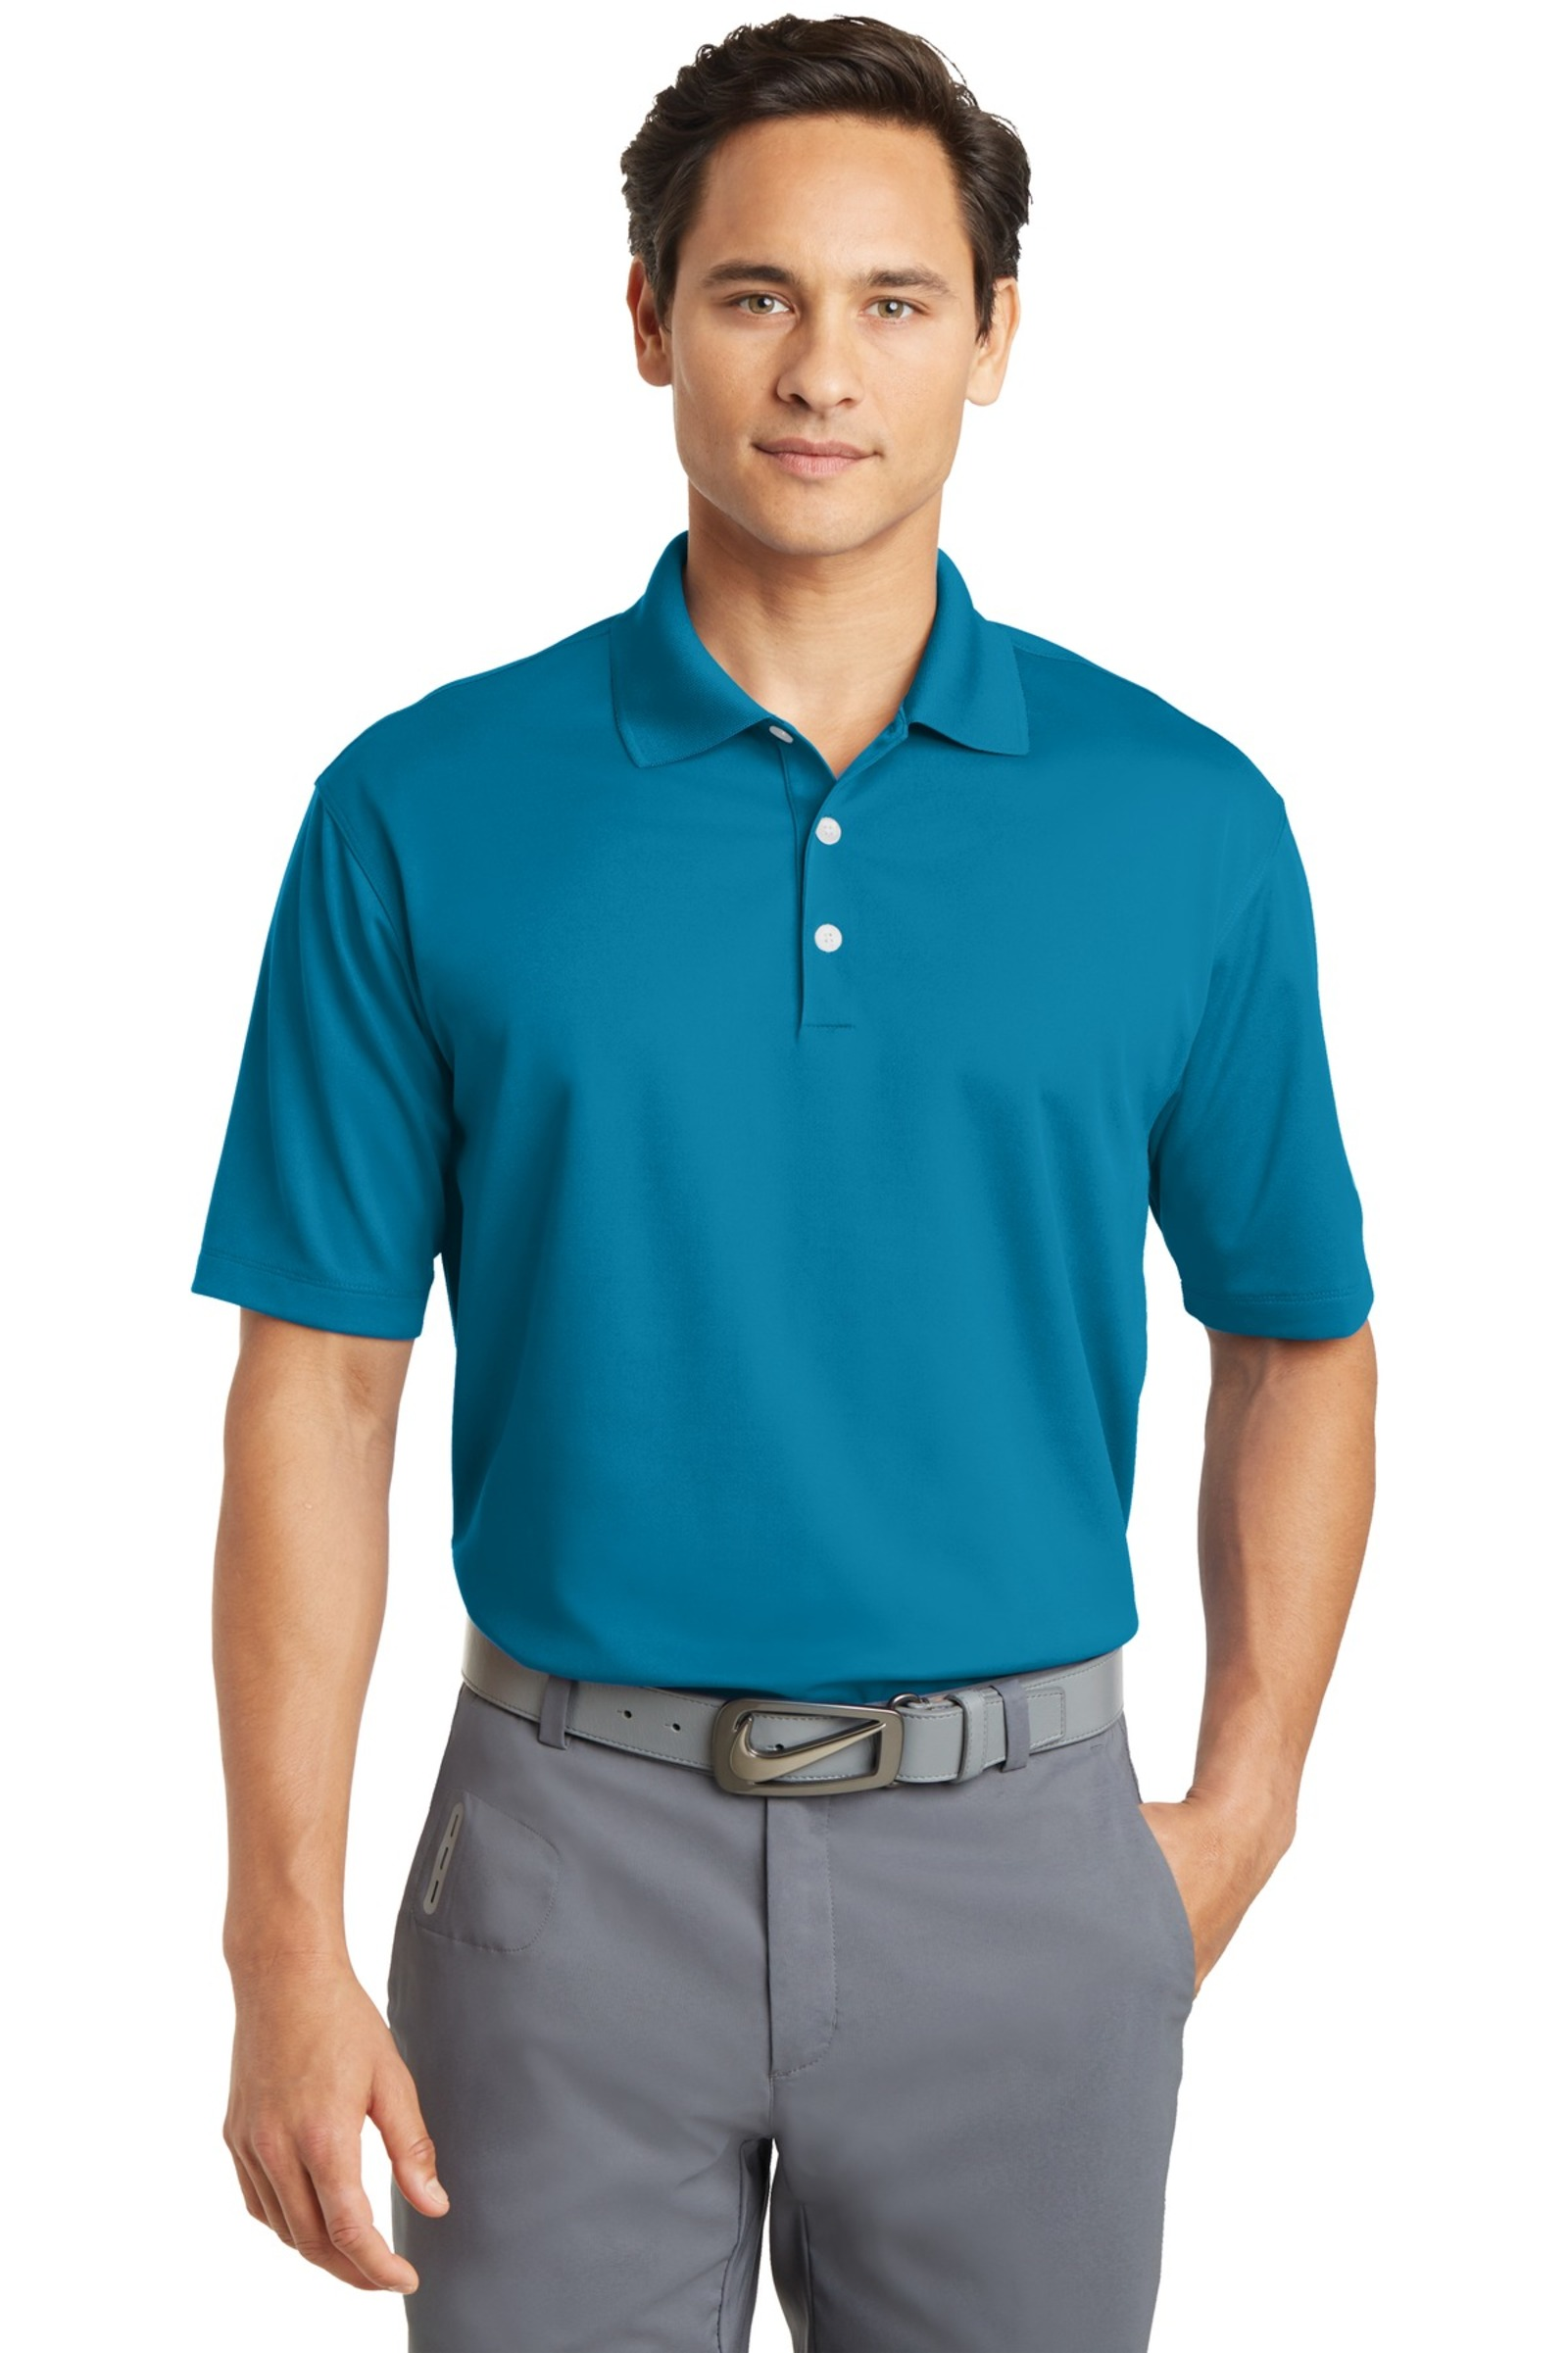 Nike Golf Embroidered Men's Tall Dri-FIT Micro Pique Polo